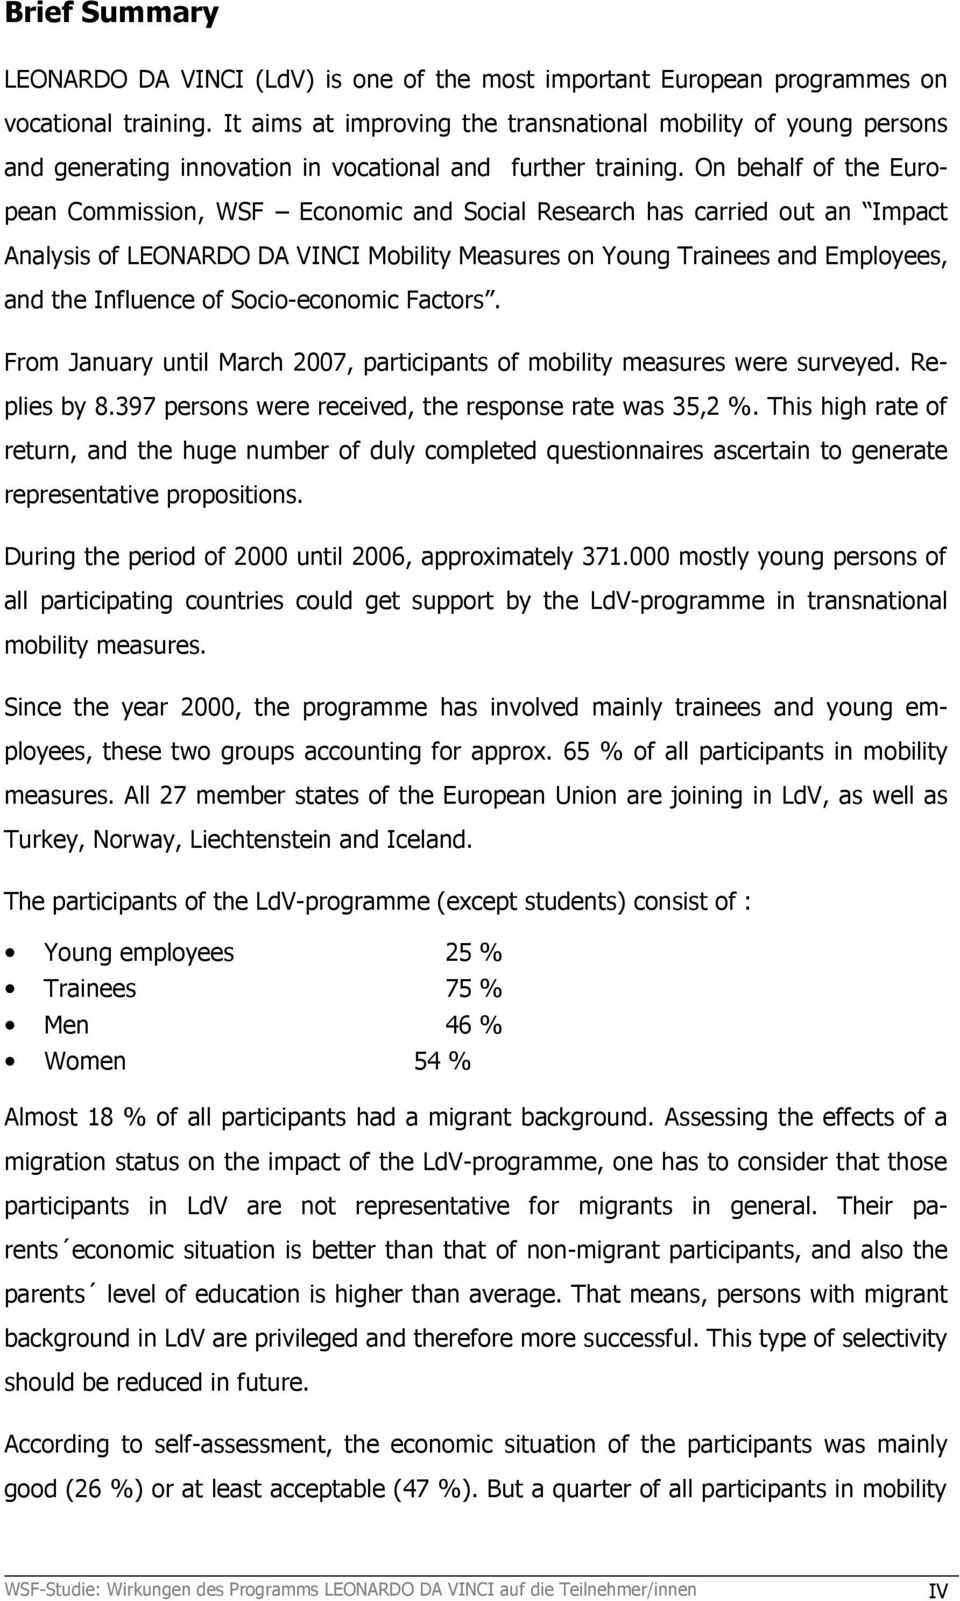 On behalf of the European Commission, WSF Economic and Social Research has carried out an Impact Analysis of LEONARDO DA VINCI Mobility Measures on Young Trainees and Employees, and the Influence of